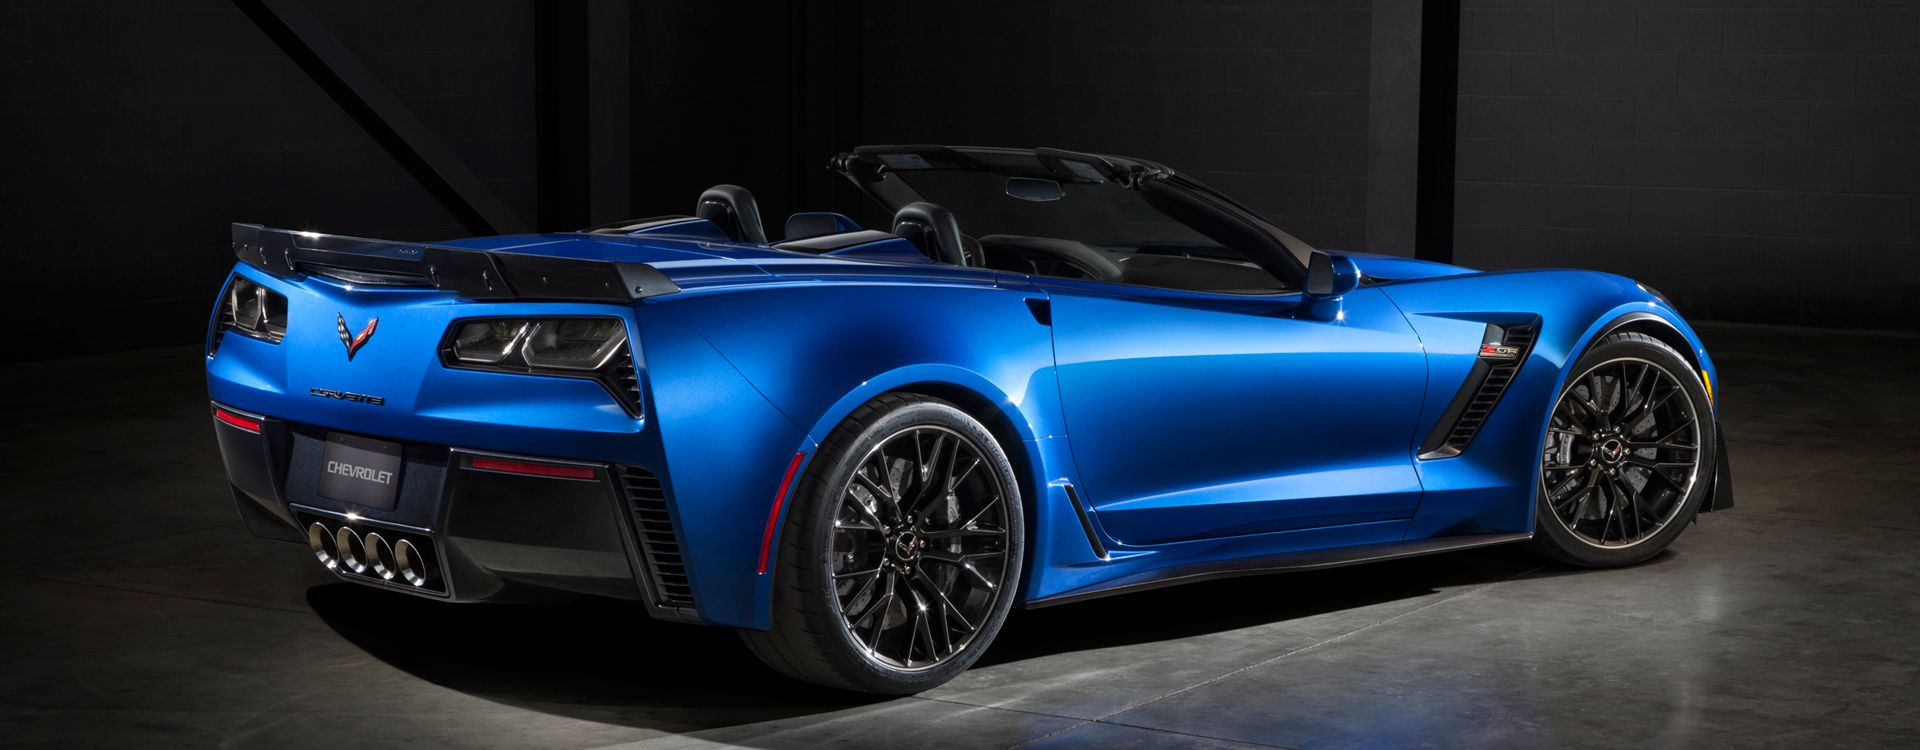 2015 Chevrolet Corvette Z06 Convertible 7 1920x1080